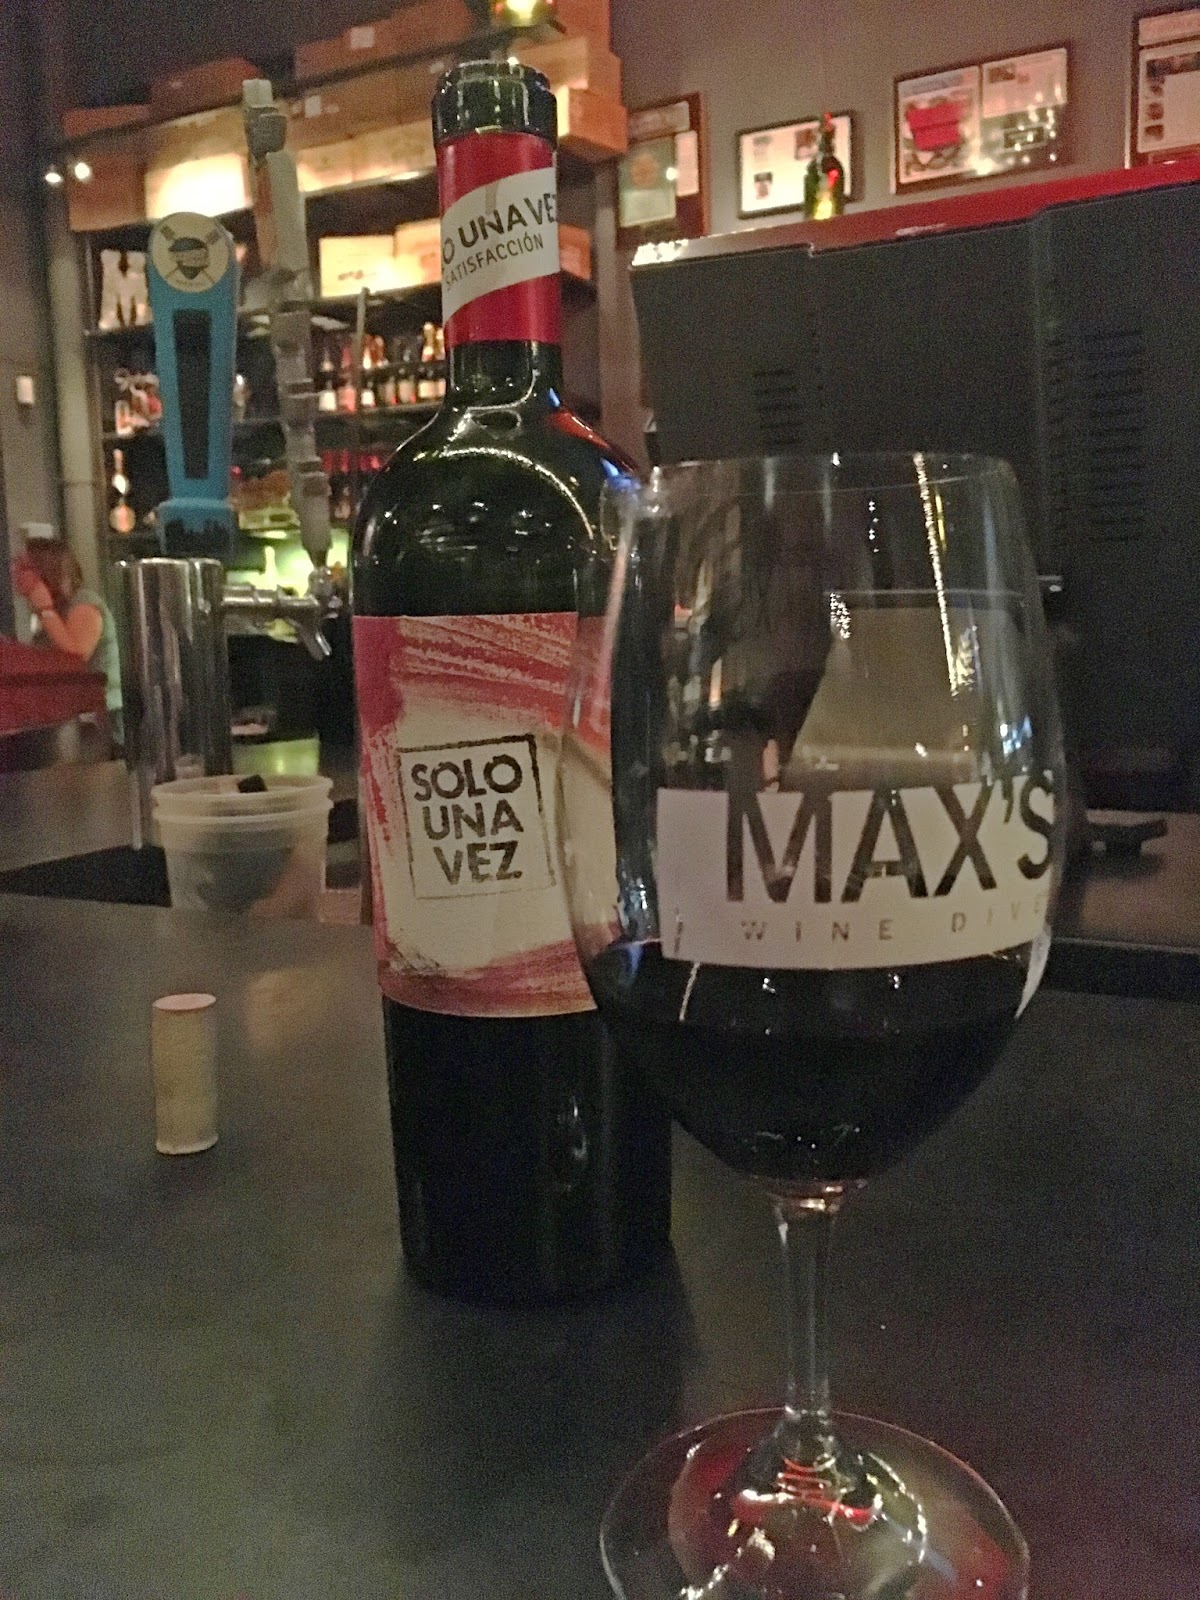 food and wine at Max's Wine Dive - a restaurant/bar in Fort Worth, Texas